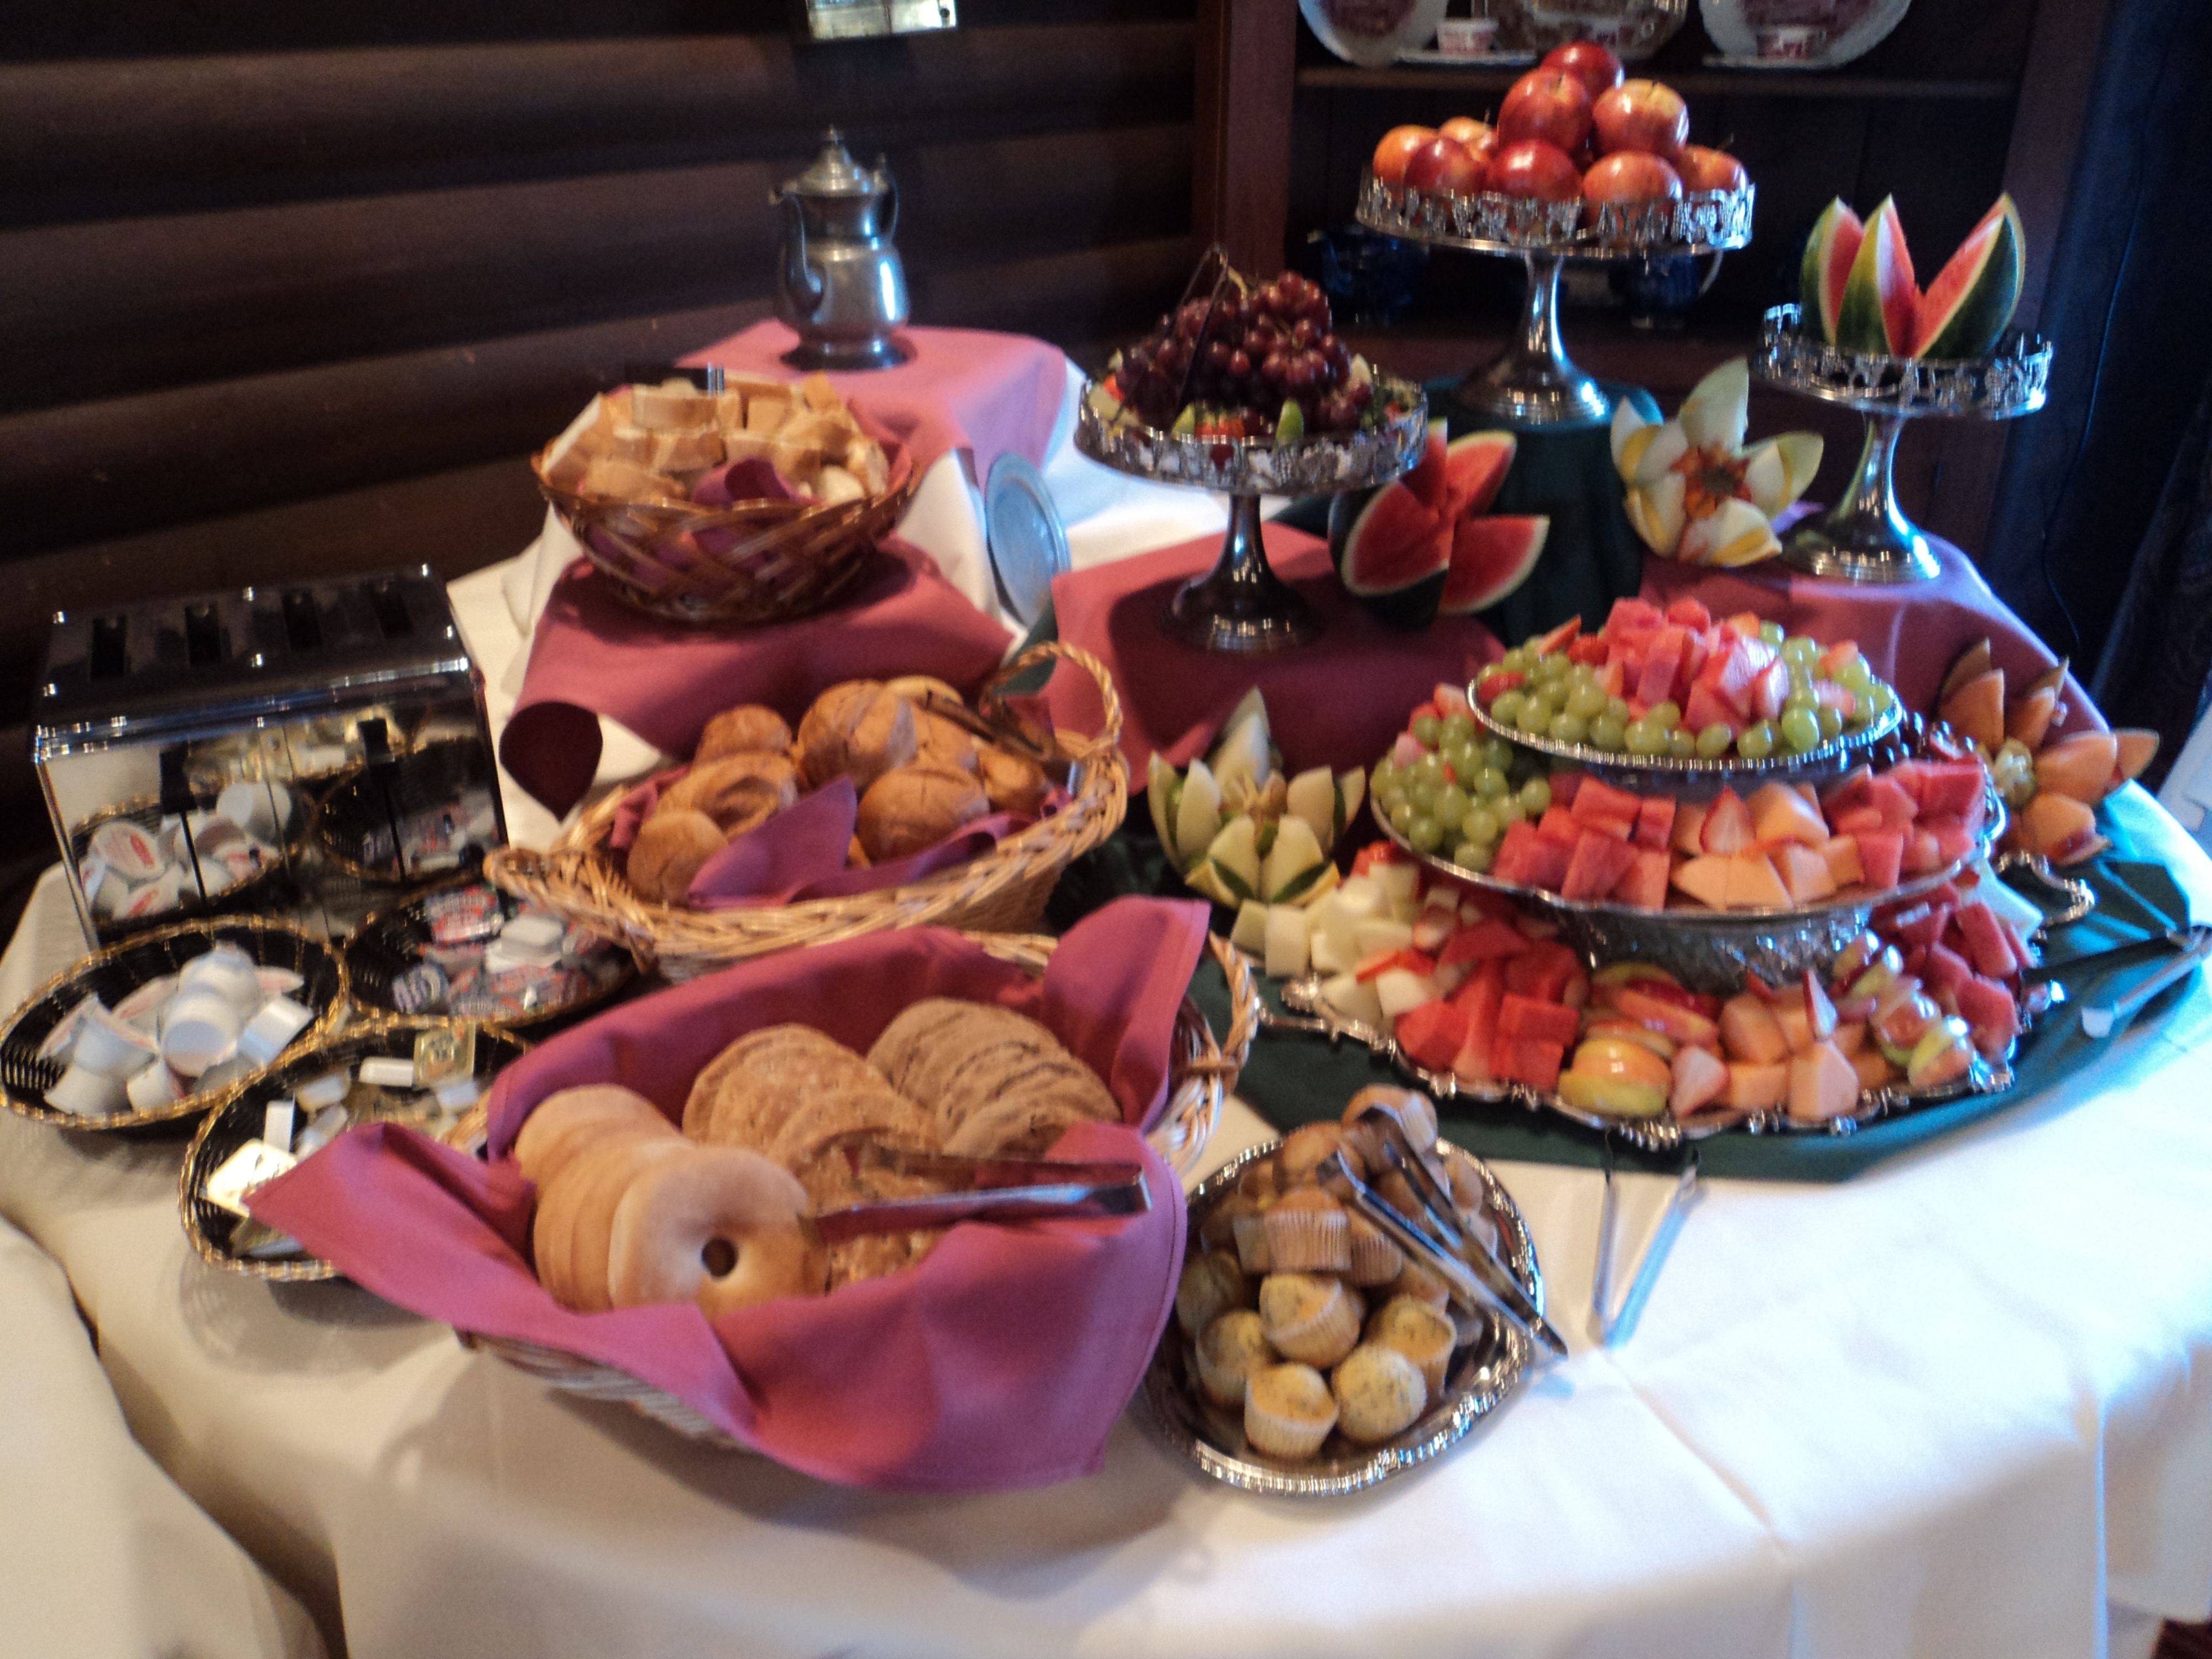 1000 images about continental breakfast ideas on for Food bar on church